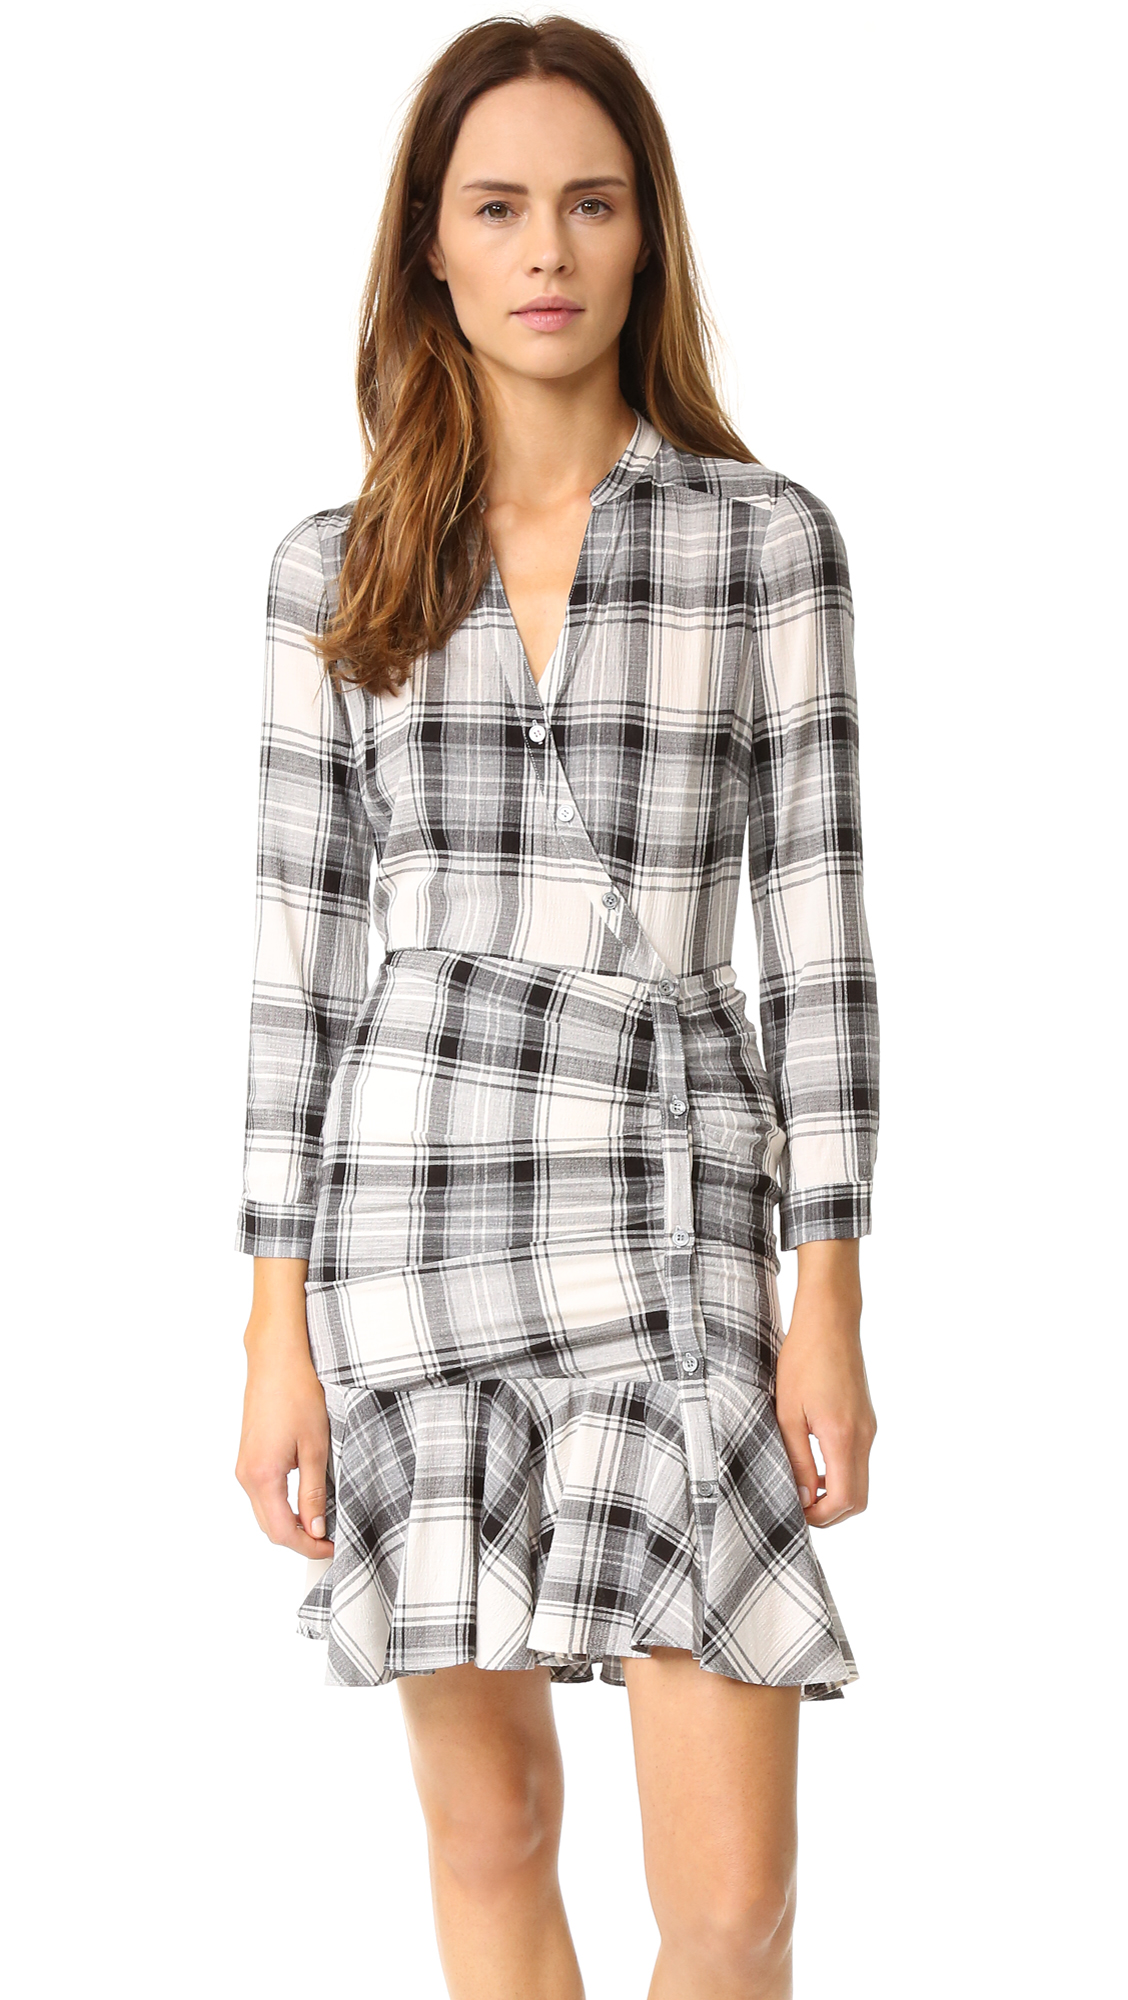 Veronica Beard Ruched Shirtdress Shopbop